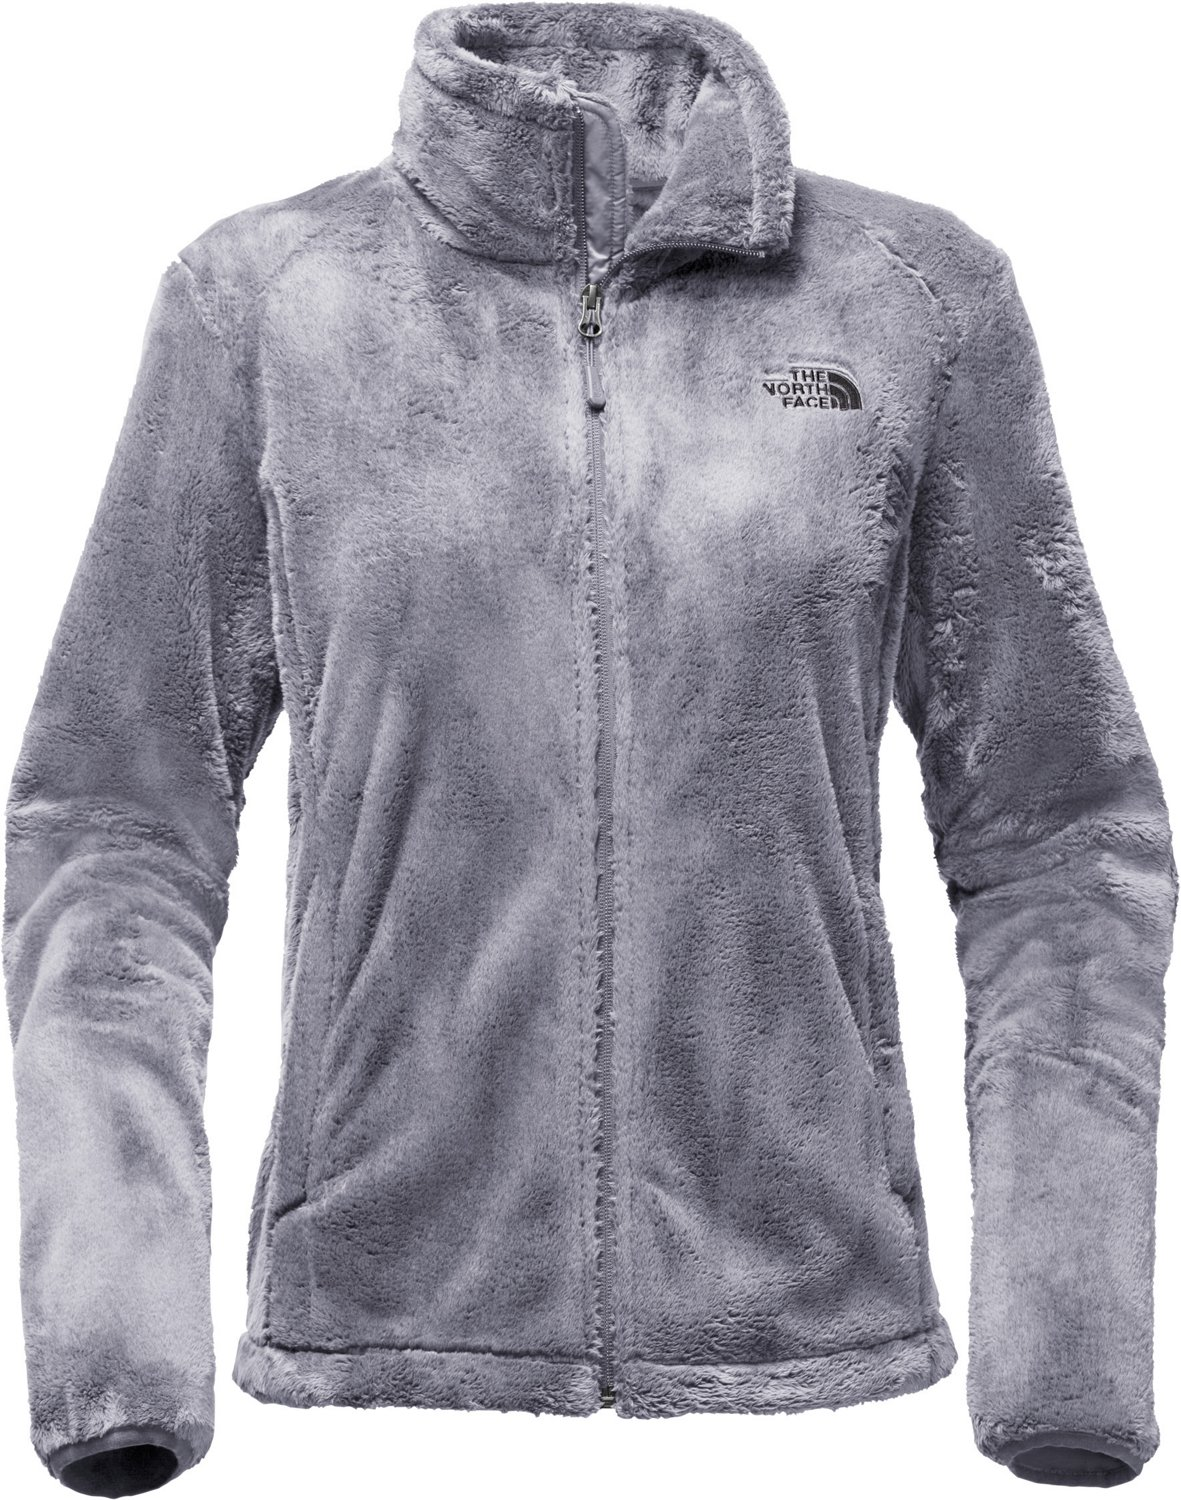 3116372fd The North Face Women's Osito 2 Jacket